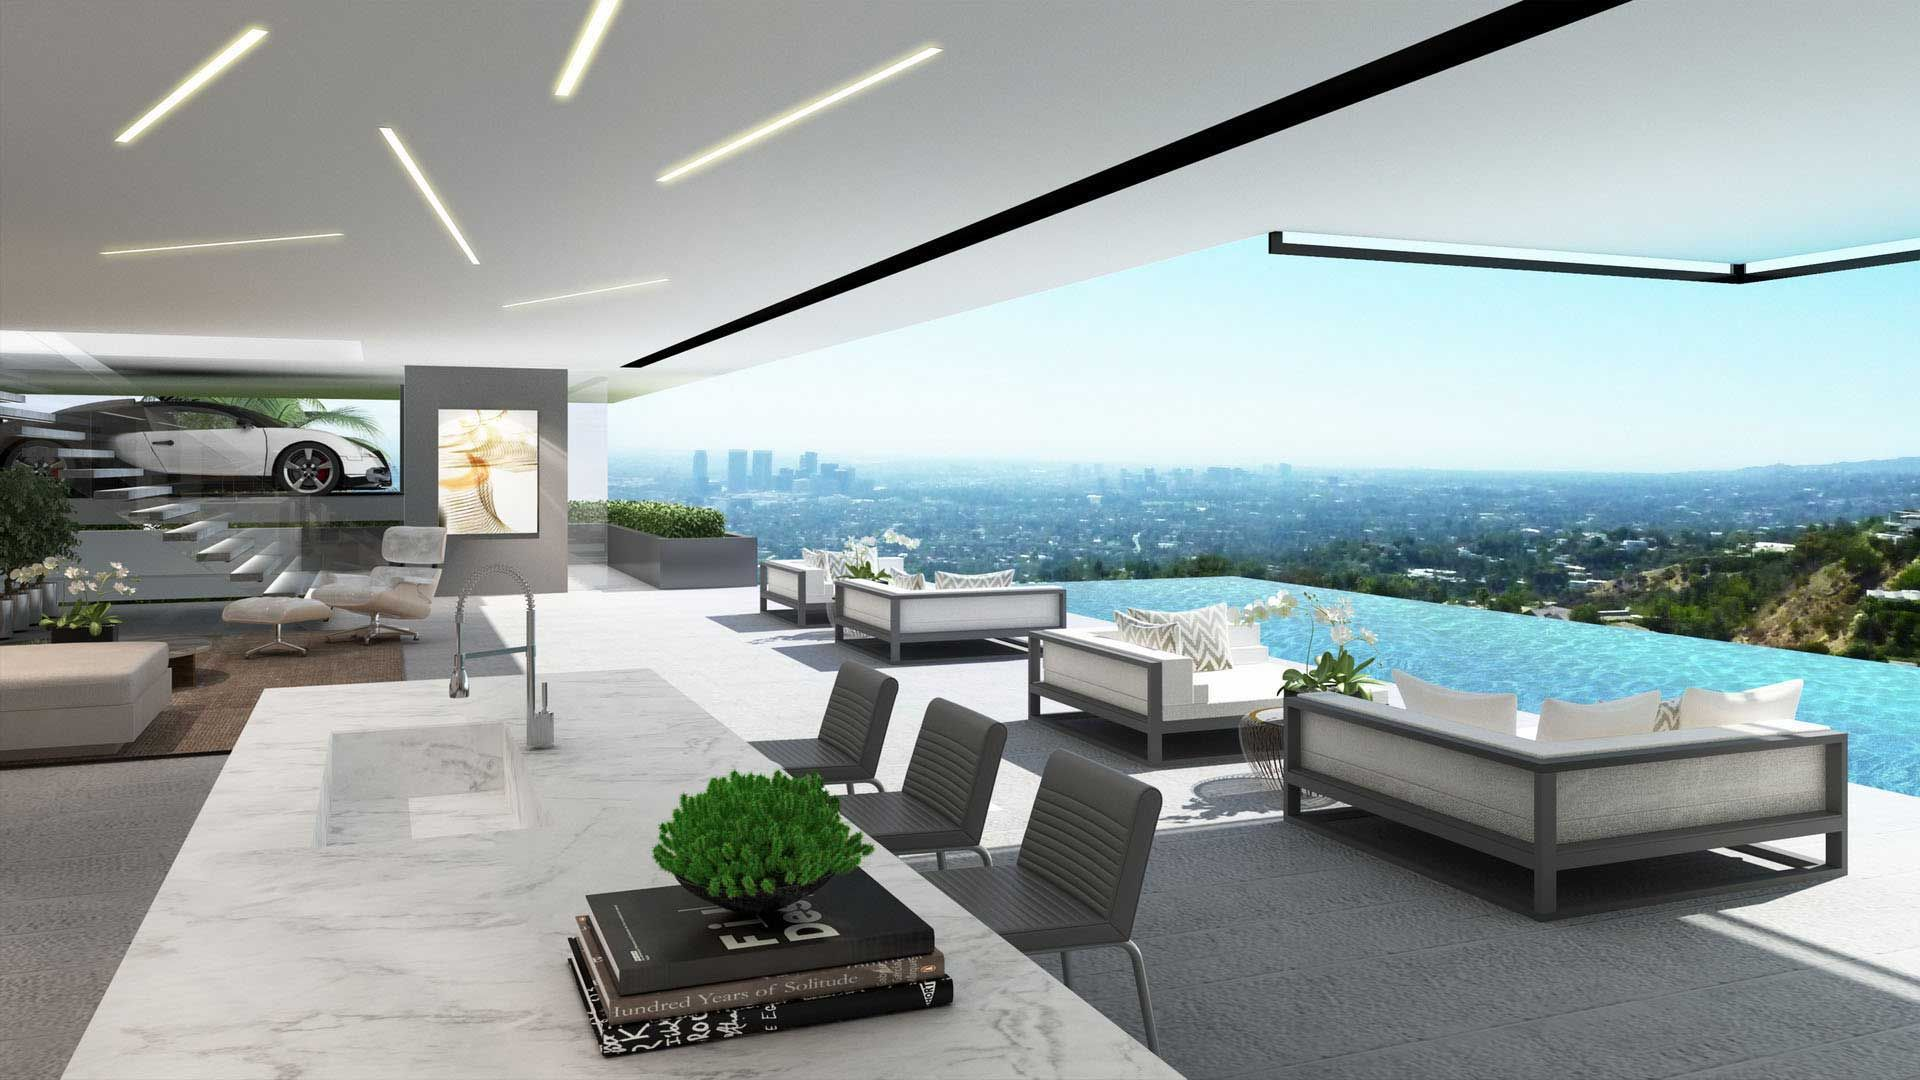 Luxury ultramodern mansions on sunset plaza drive in los angeles http www caandesign com luxury ultramodern mansions sunset plaza drive los angeles